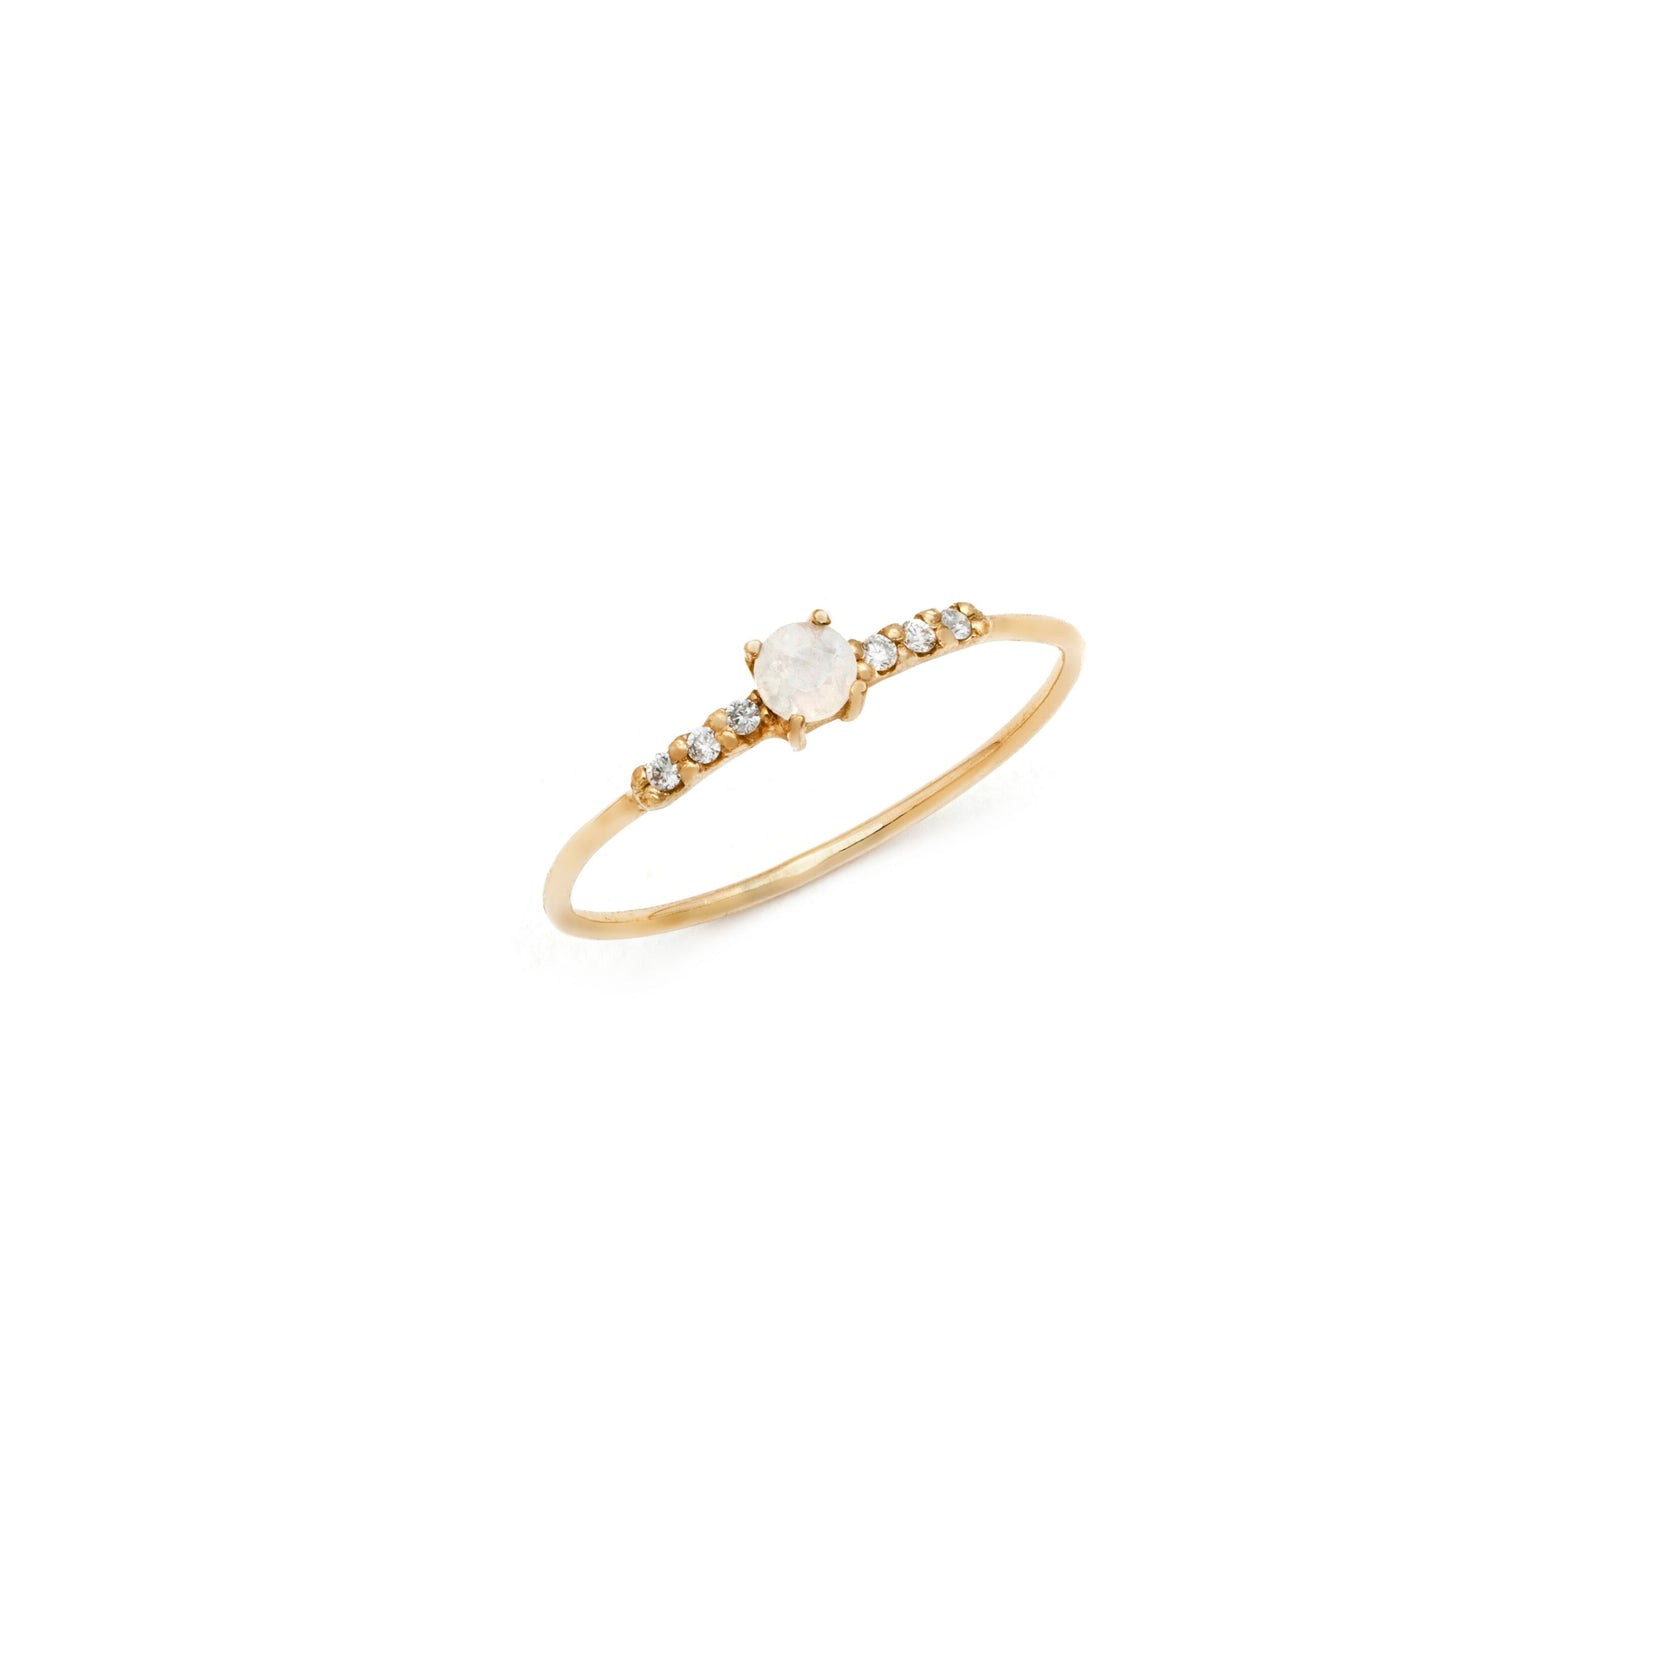 Tiny Moonstone Diamond Ring - 10k Solid Gold